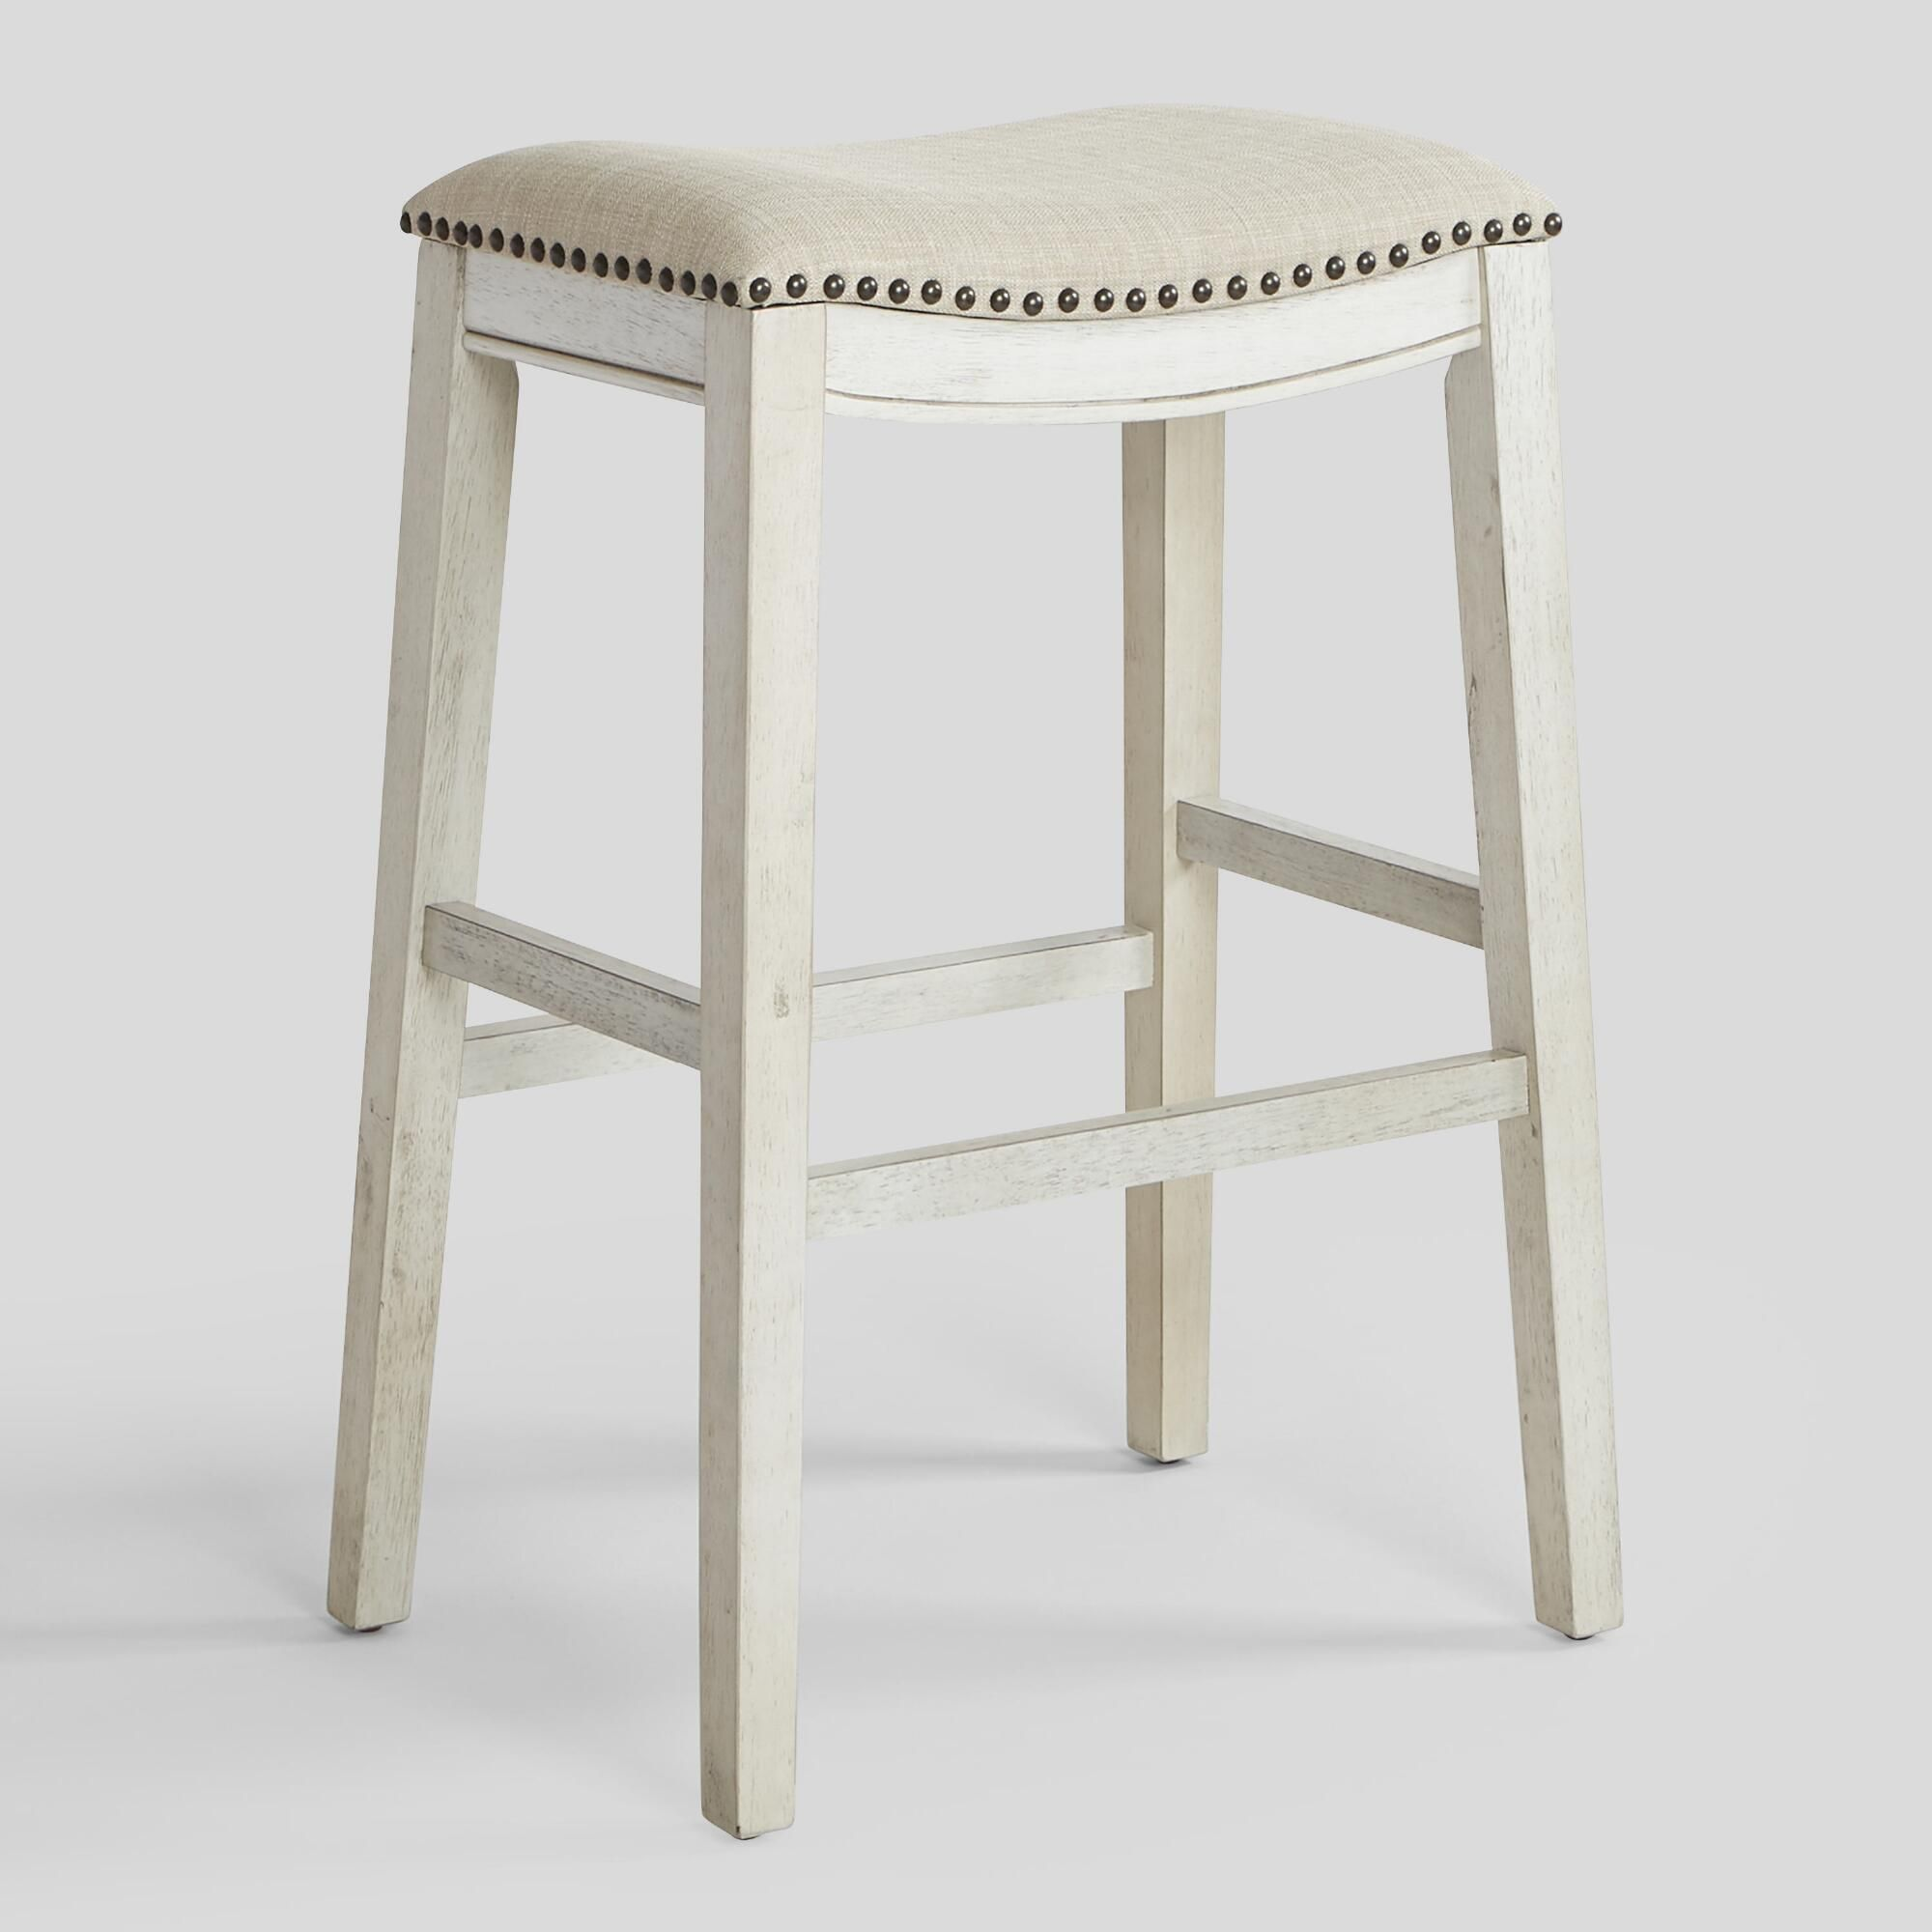 An Antiqued Wood Base In Gray Or White Lends A Vintage Feel To Our Sophisticated Barstools Detailed With Bar Stools How To Antique Wood Upholstered Bar Stools